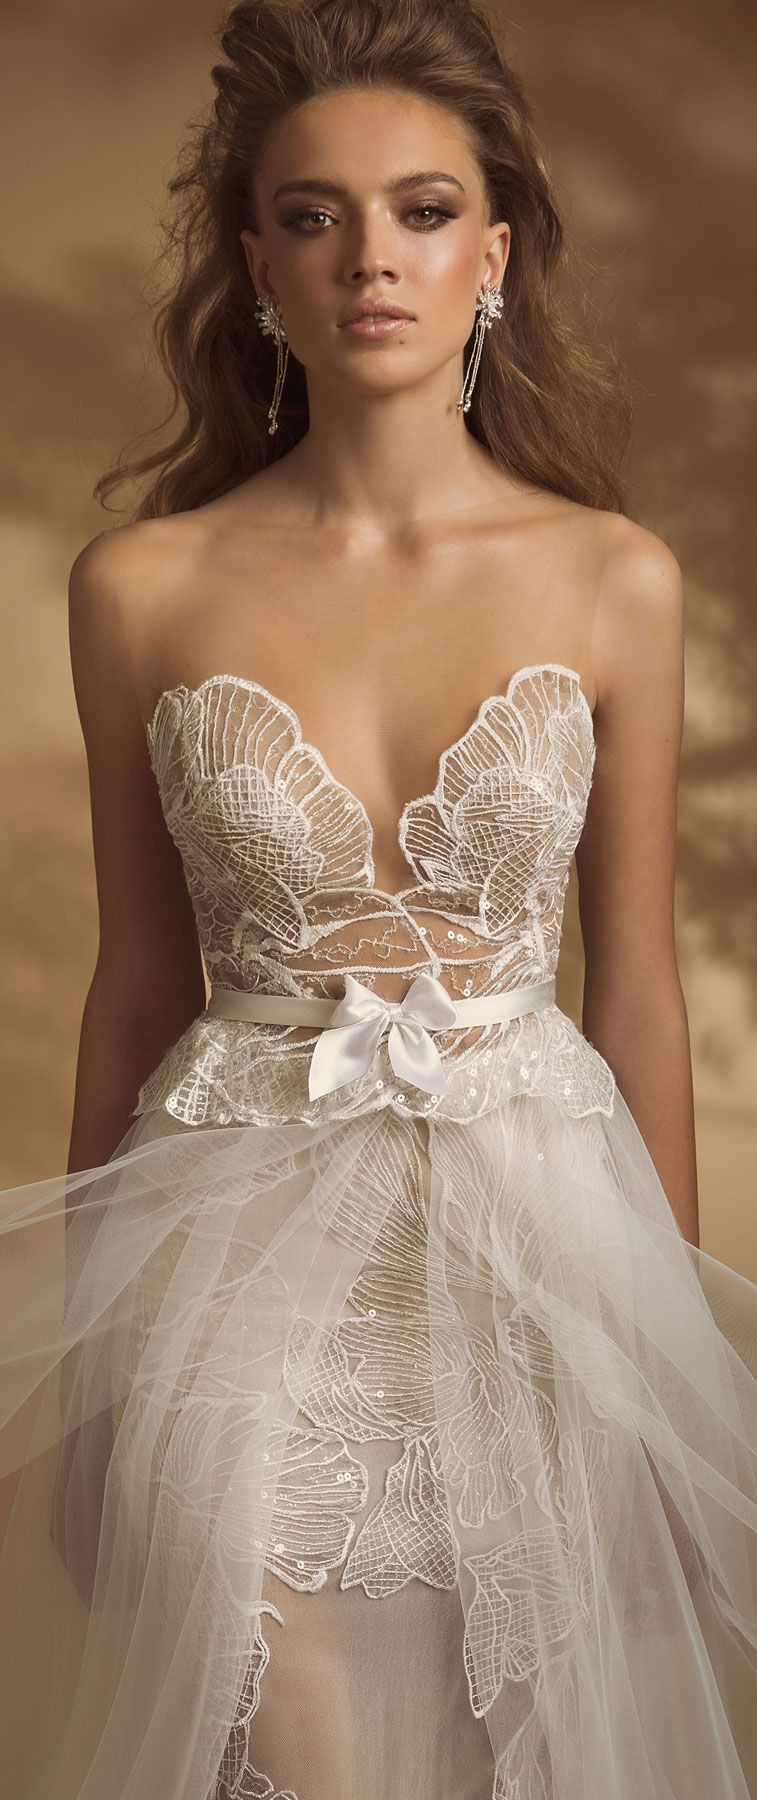 Sweetheart neckline heavy embellishment a line wedding dress #wedding #weddingdress #weddinggown